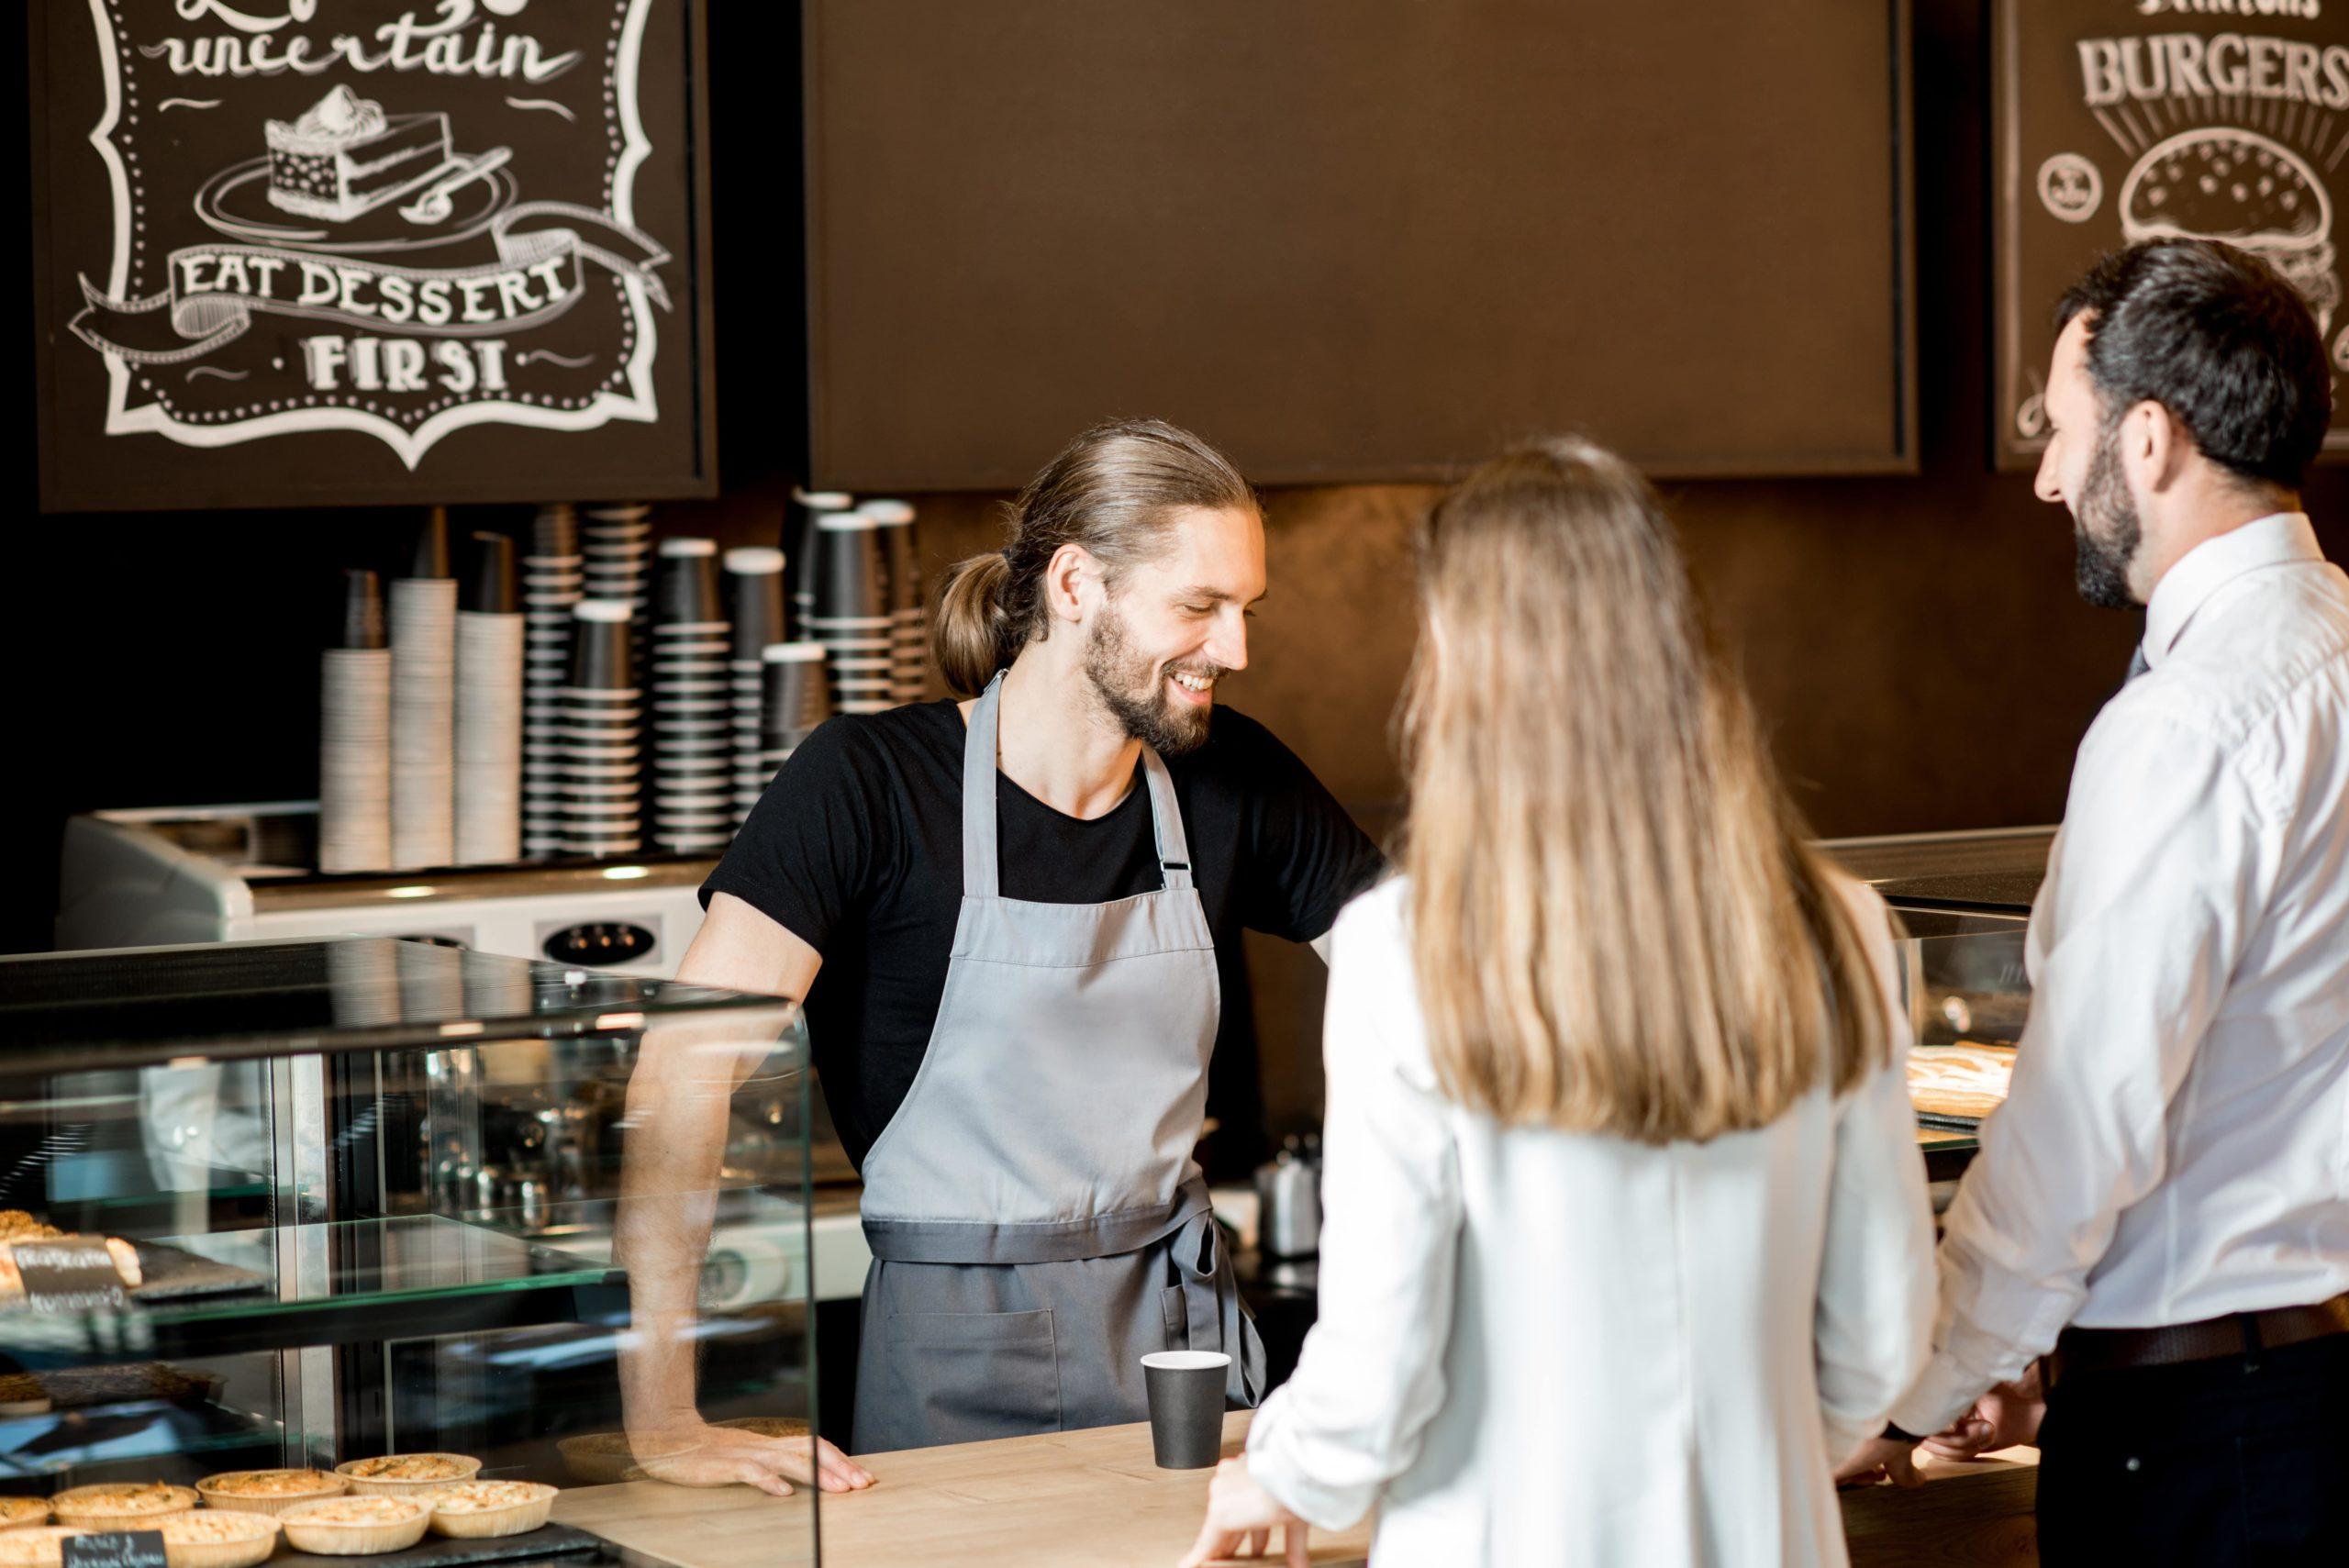 A woman buying coffee from a barista.